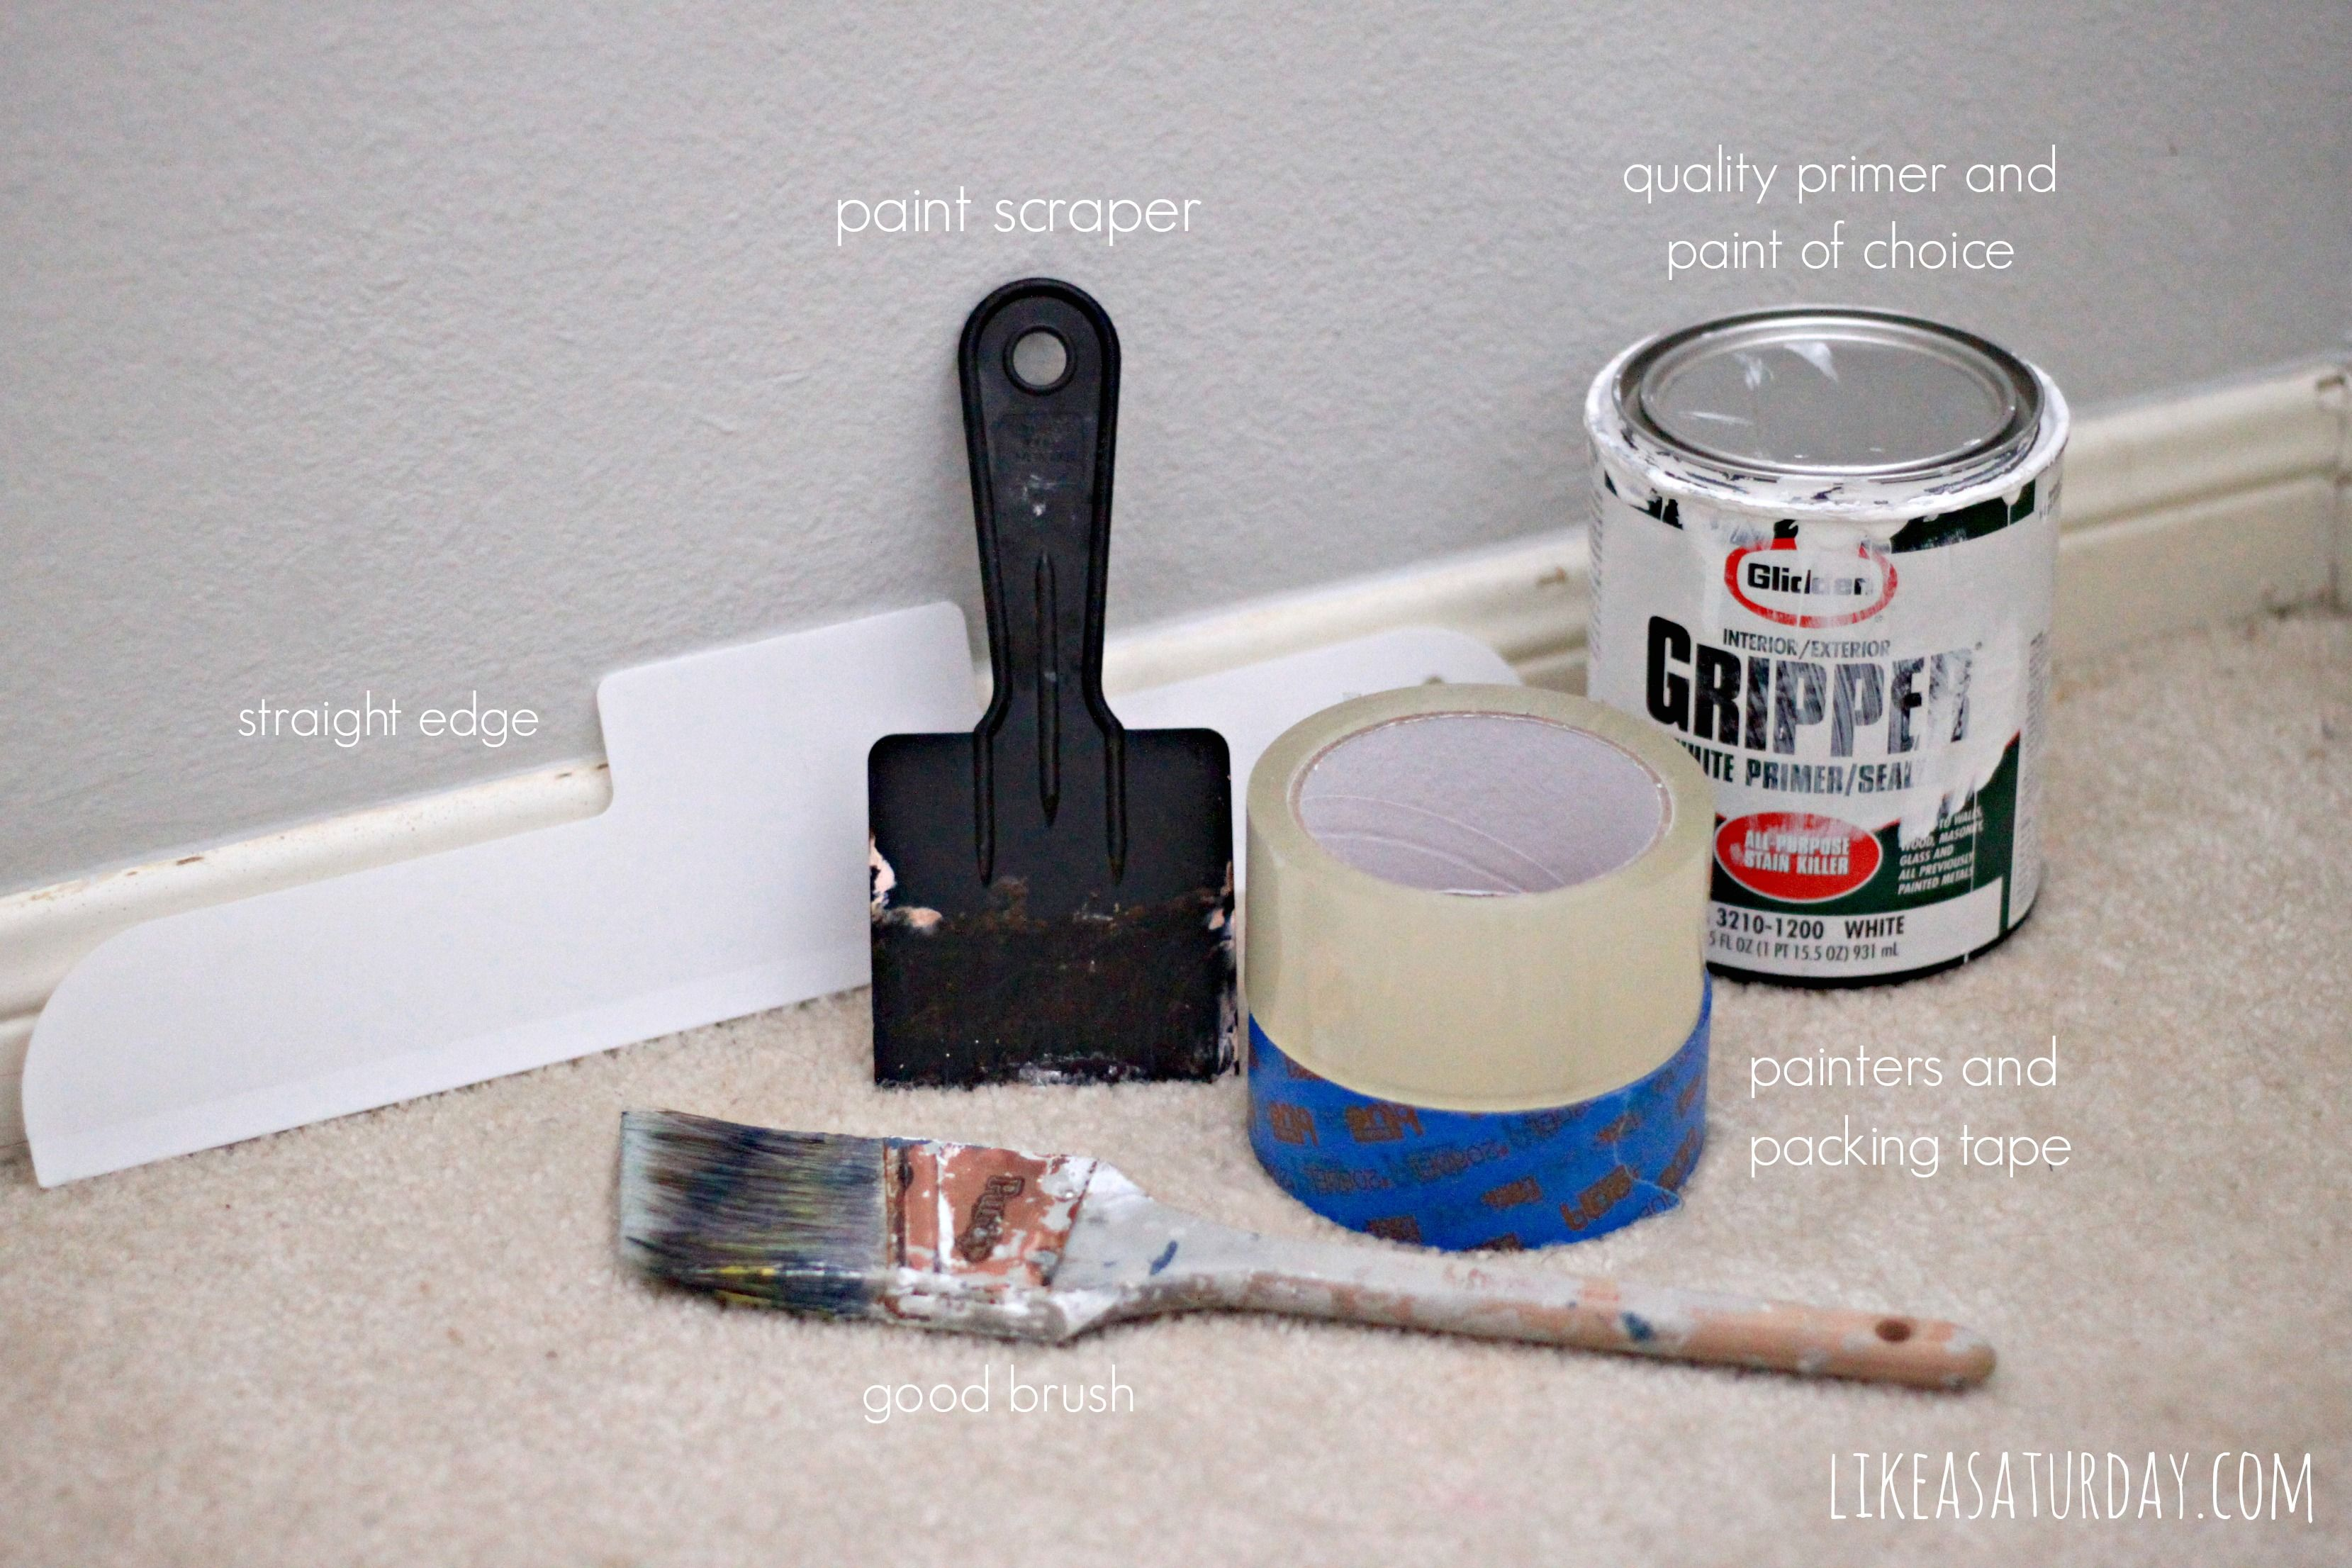 How To Paint Your Trim Tips For How To Paint Your Trim And Baseboards Easily Quickly And Wi Painting Trim How To Paint Trim With Carpet Painting Baseboards